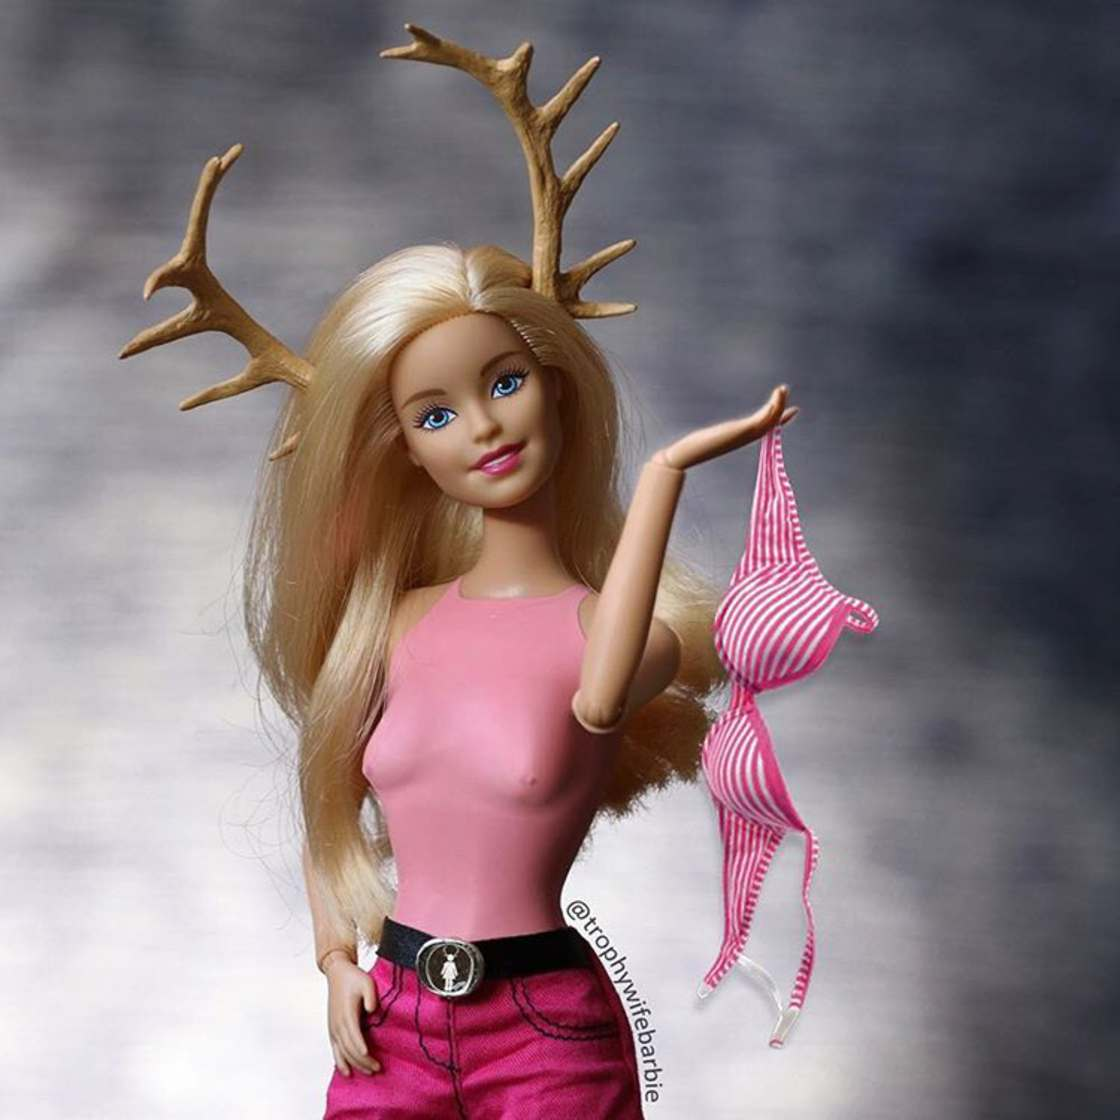 Trophy Wife Barbie - La vie debridee d'une Barbie sur Instagram